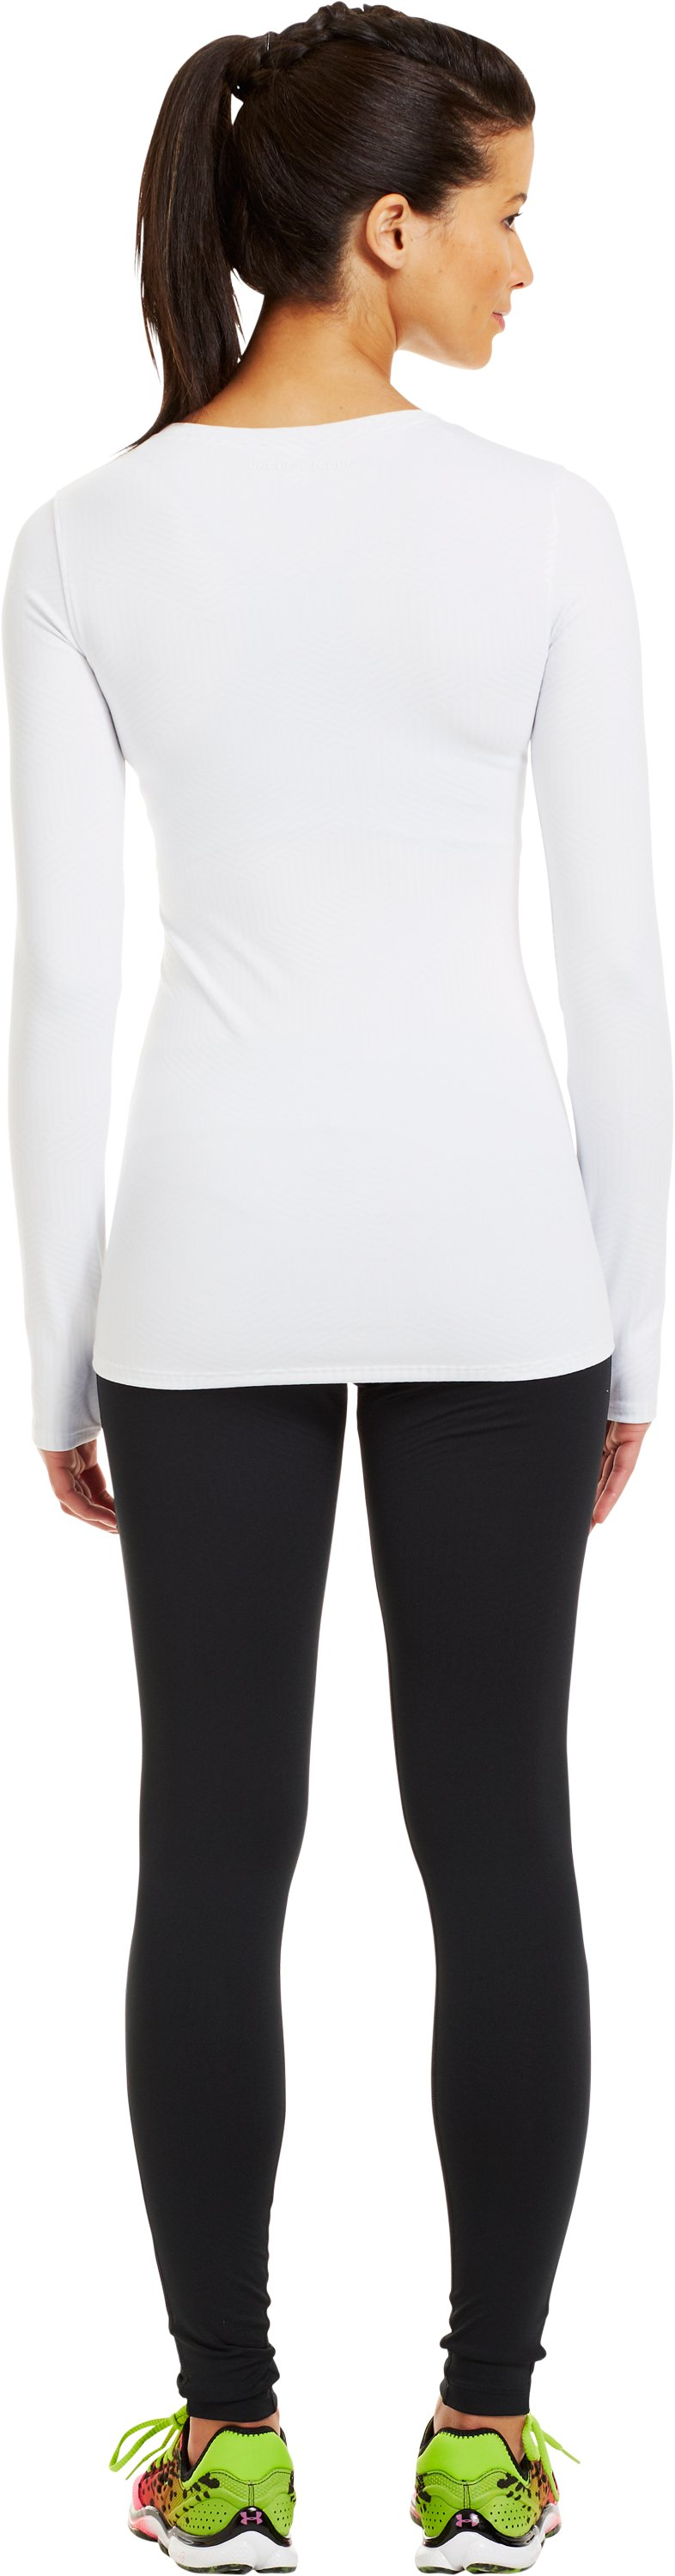 Women's ColdGear® Infrared V-Neck Long Sleeve, White, Back